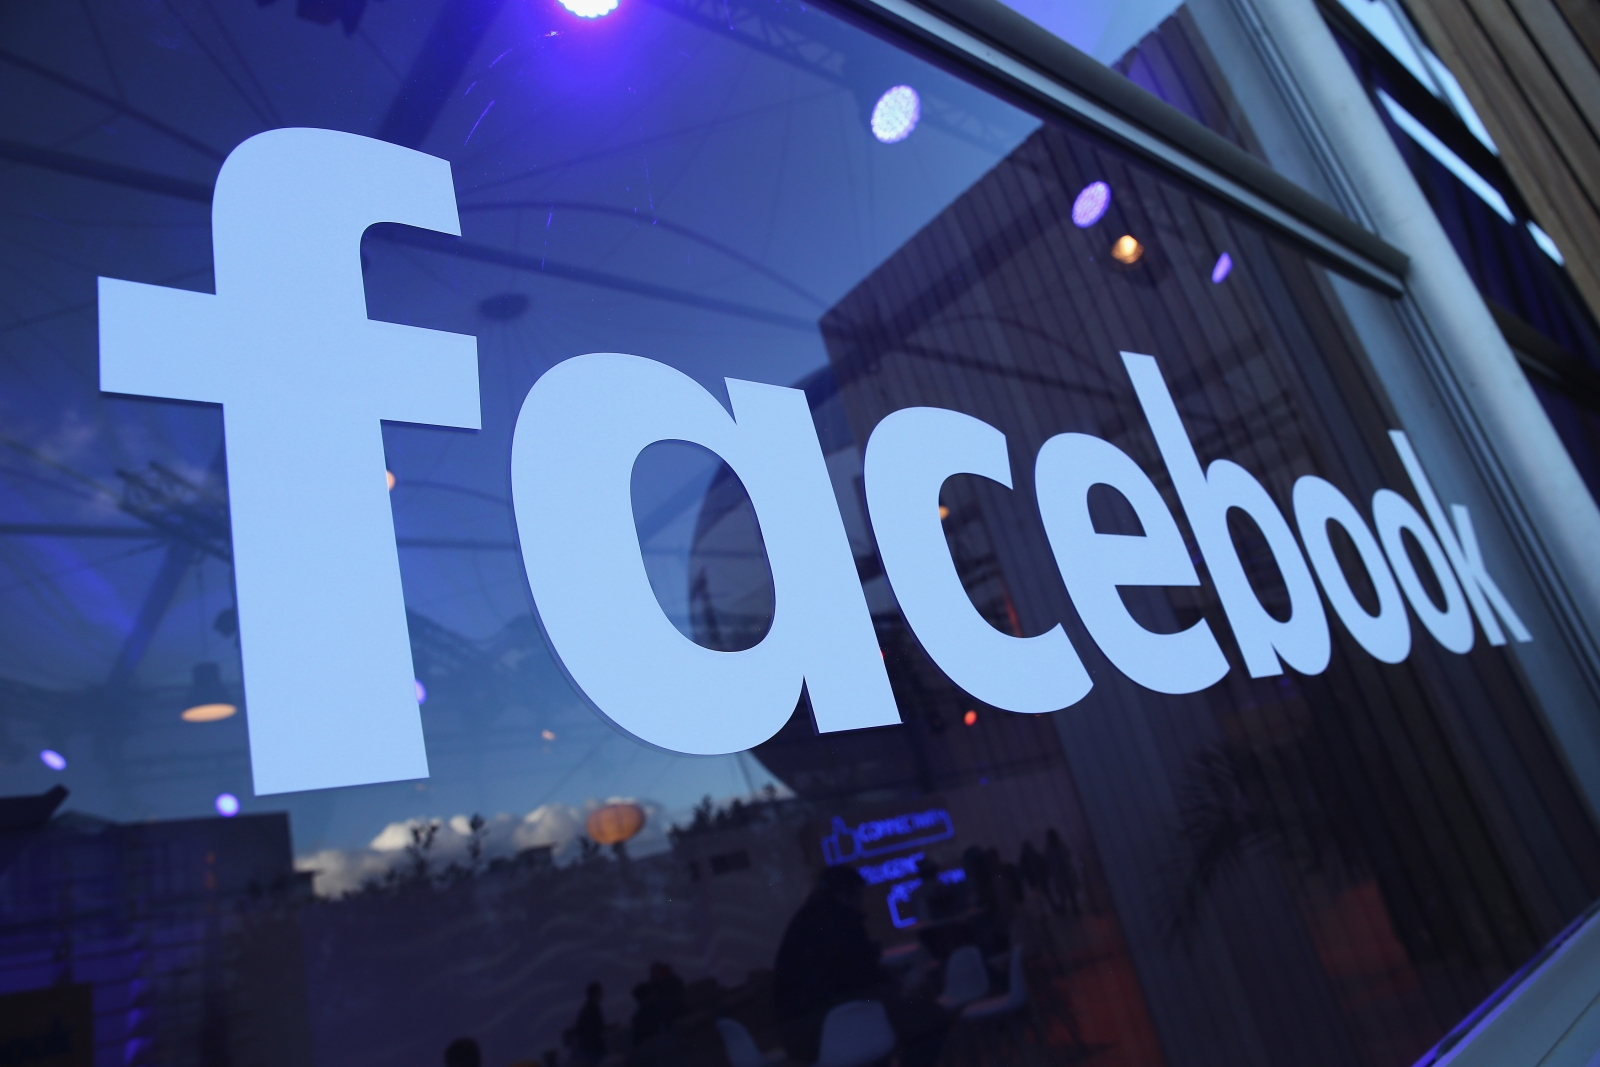 Facebook to increase United Kingdom employees by 50% in 2017